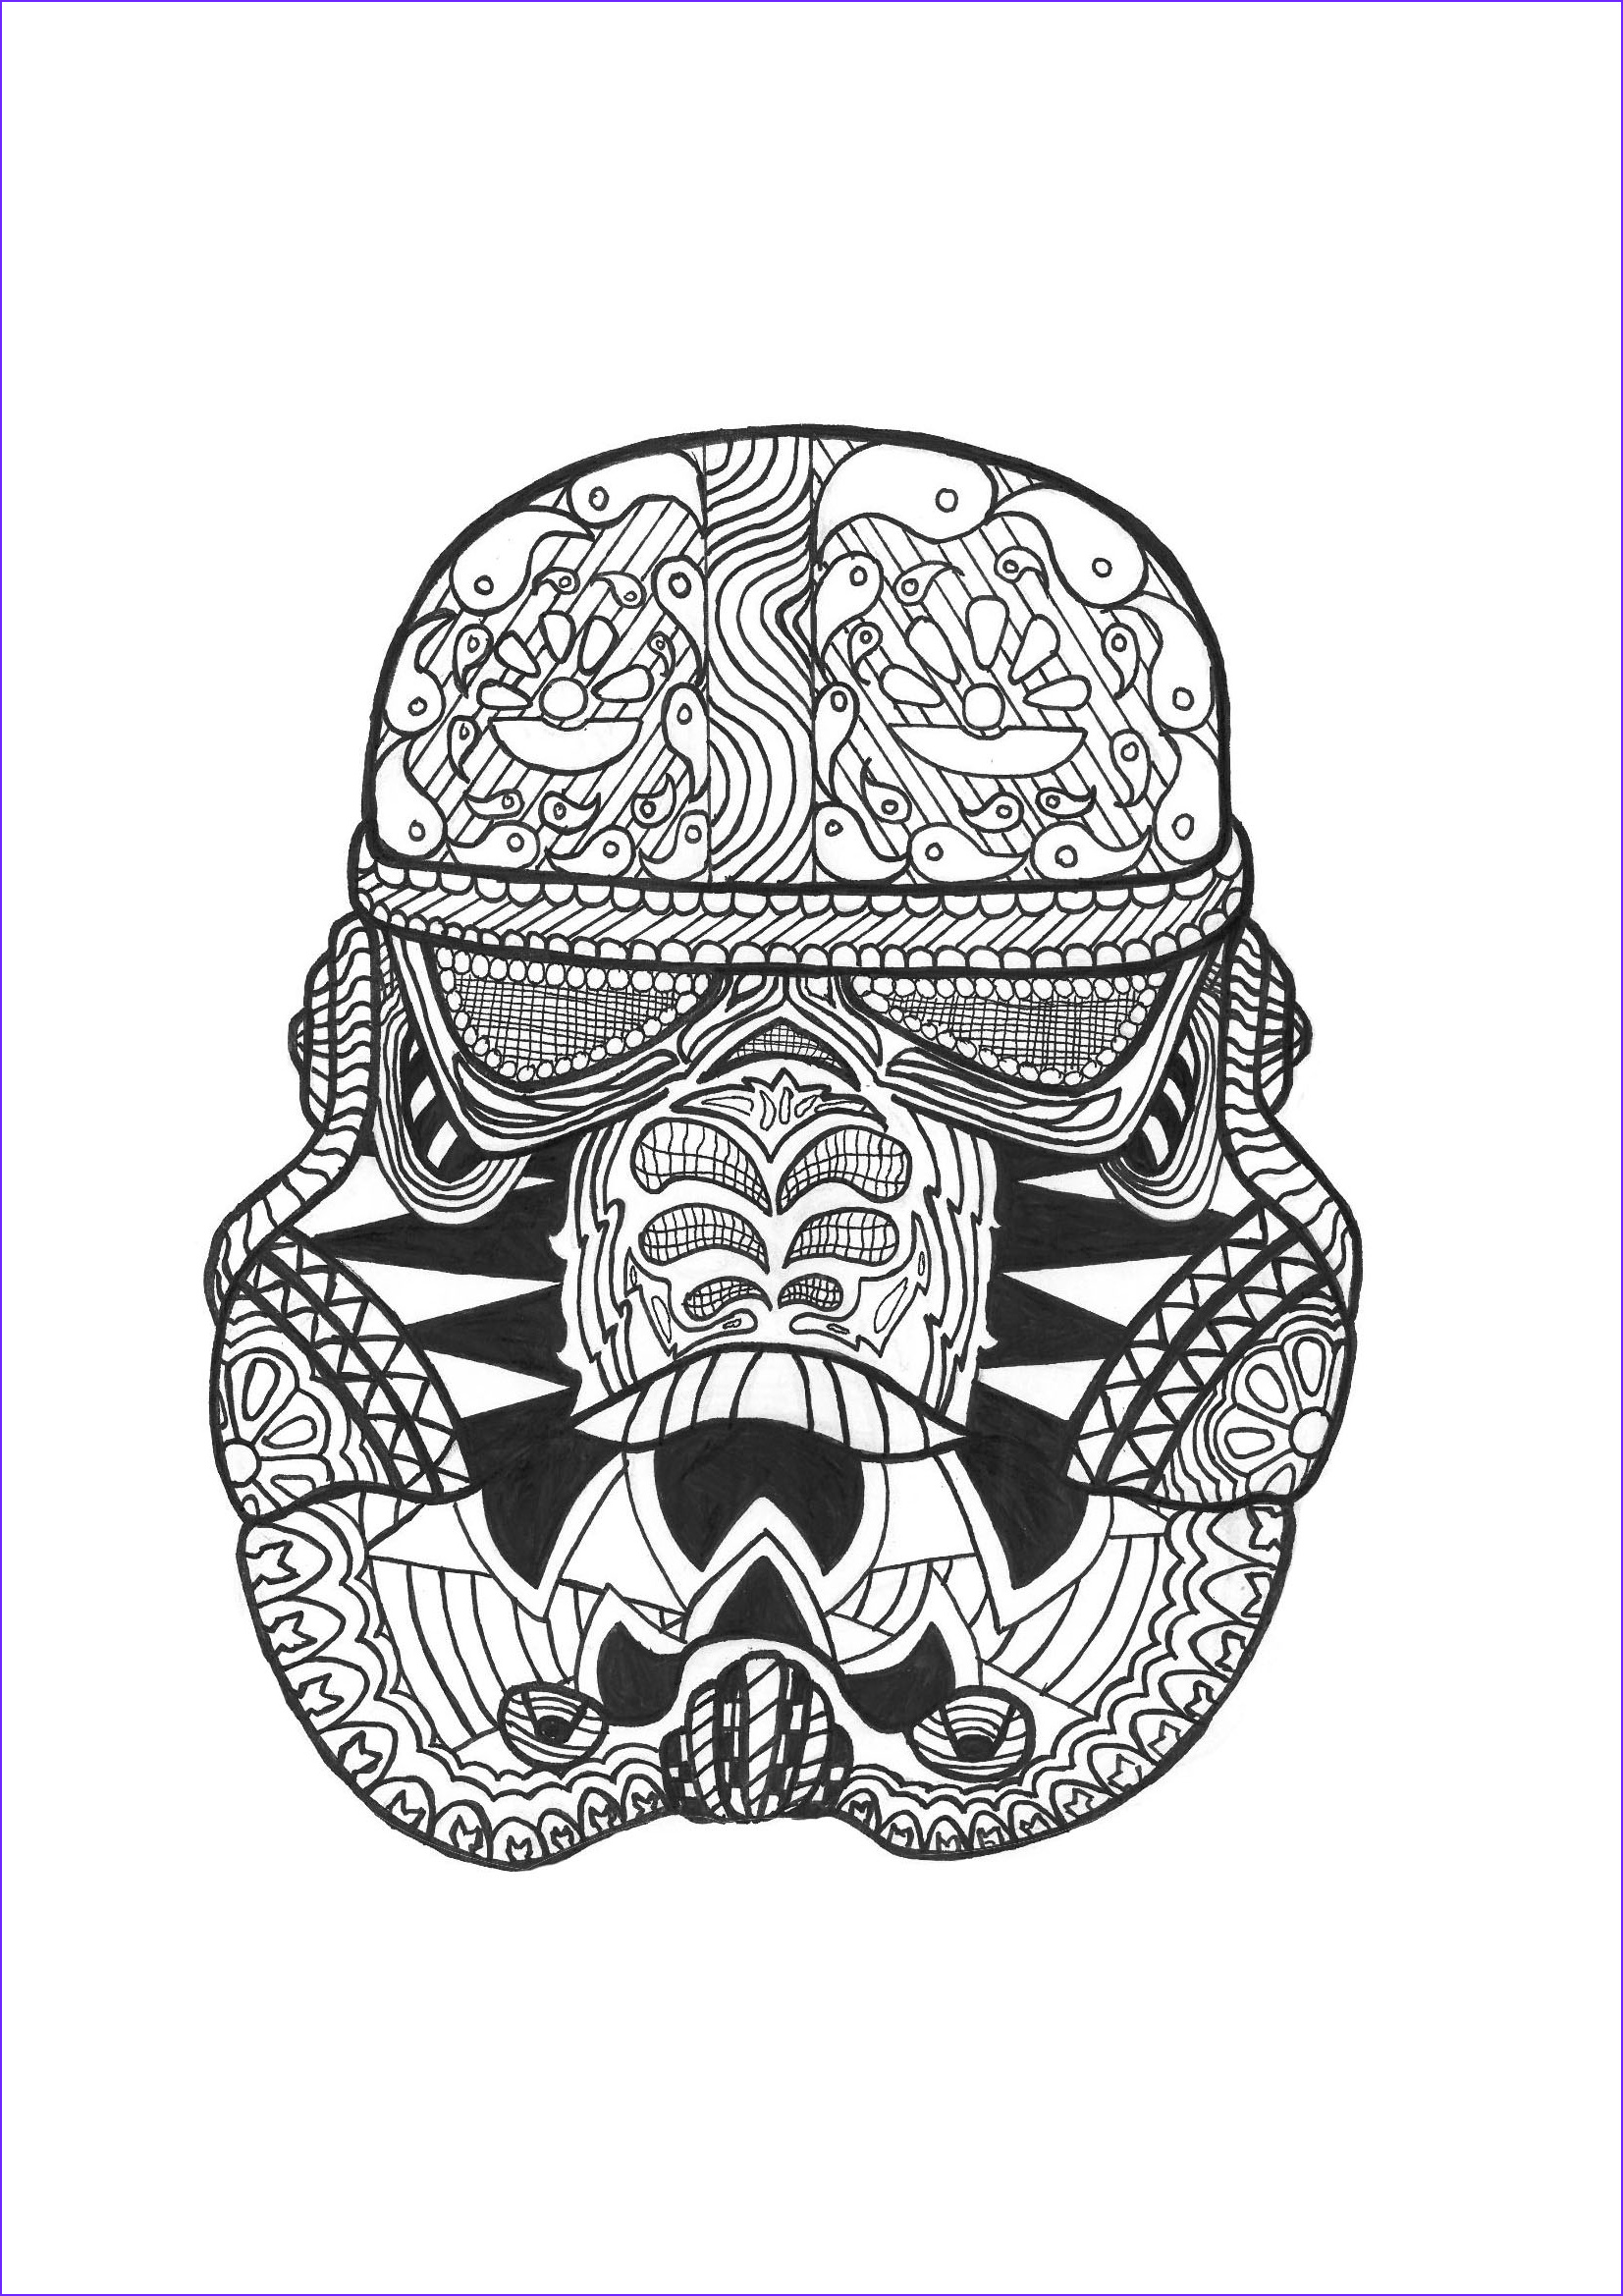 image=anti stress coloring page adult zen stormtrooper by allan 1